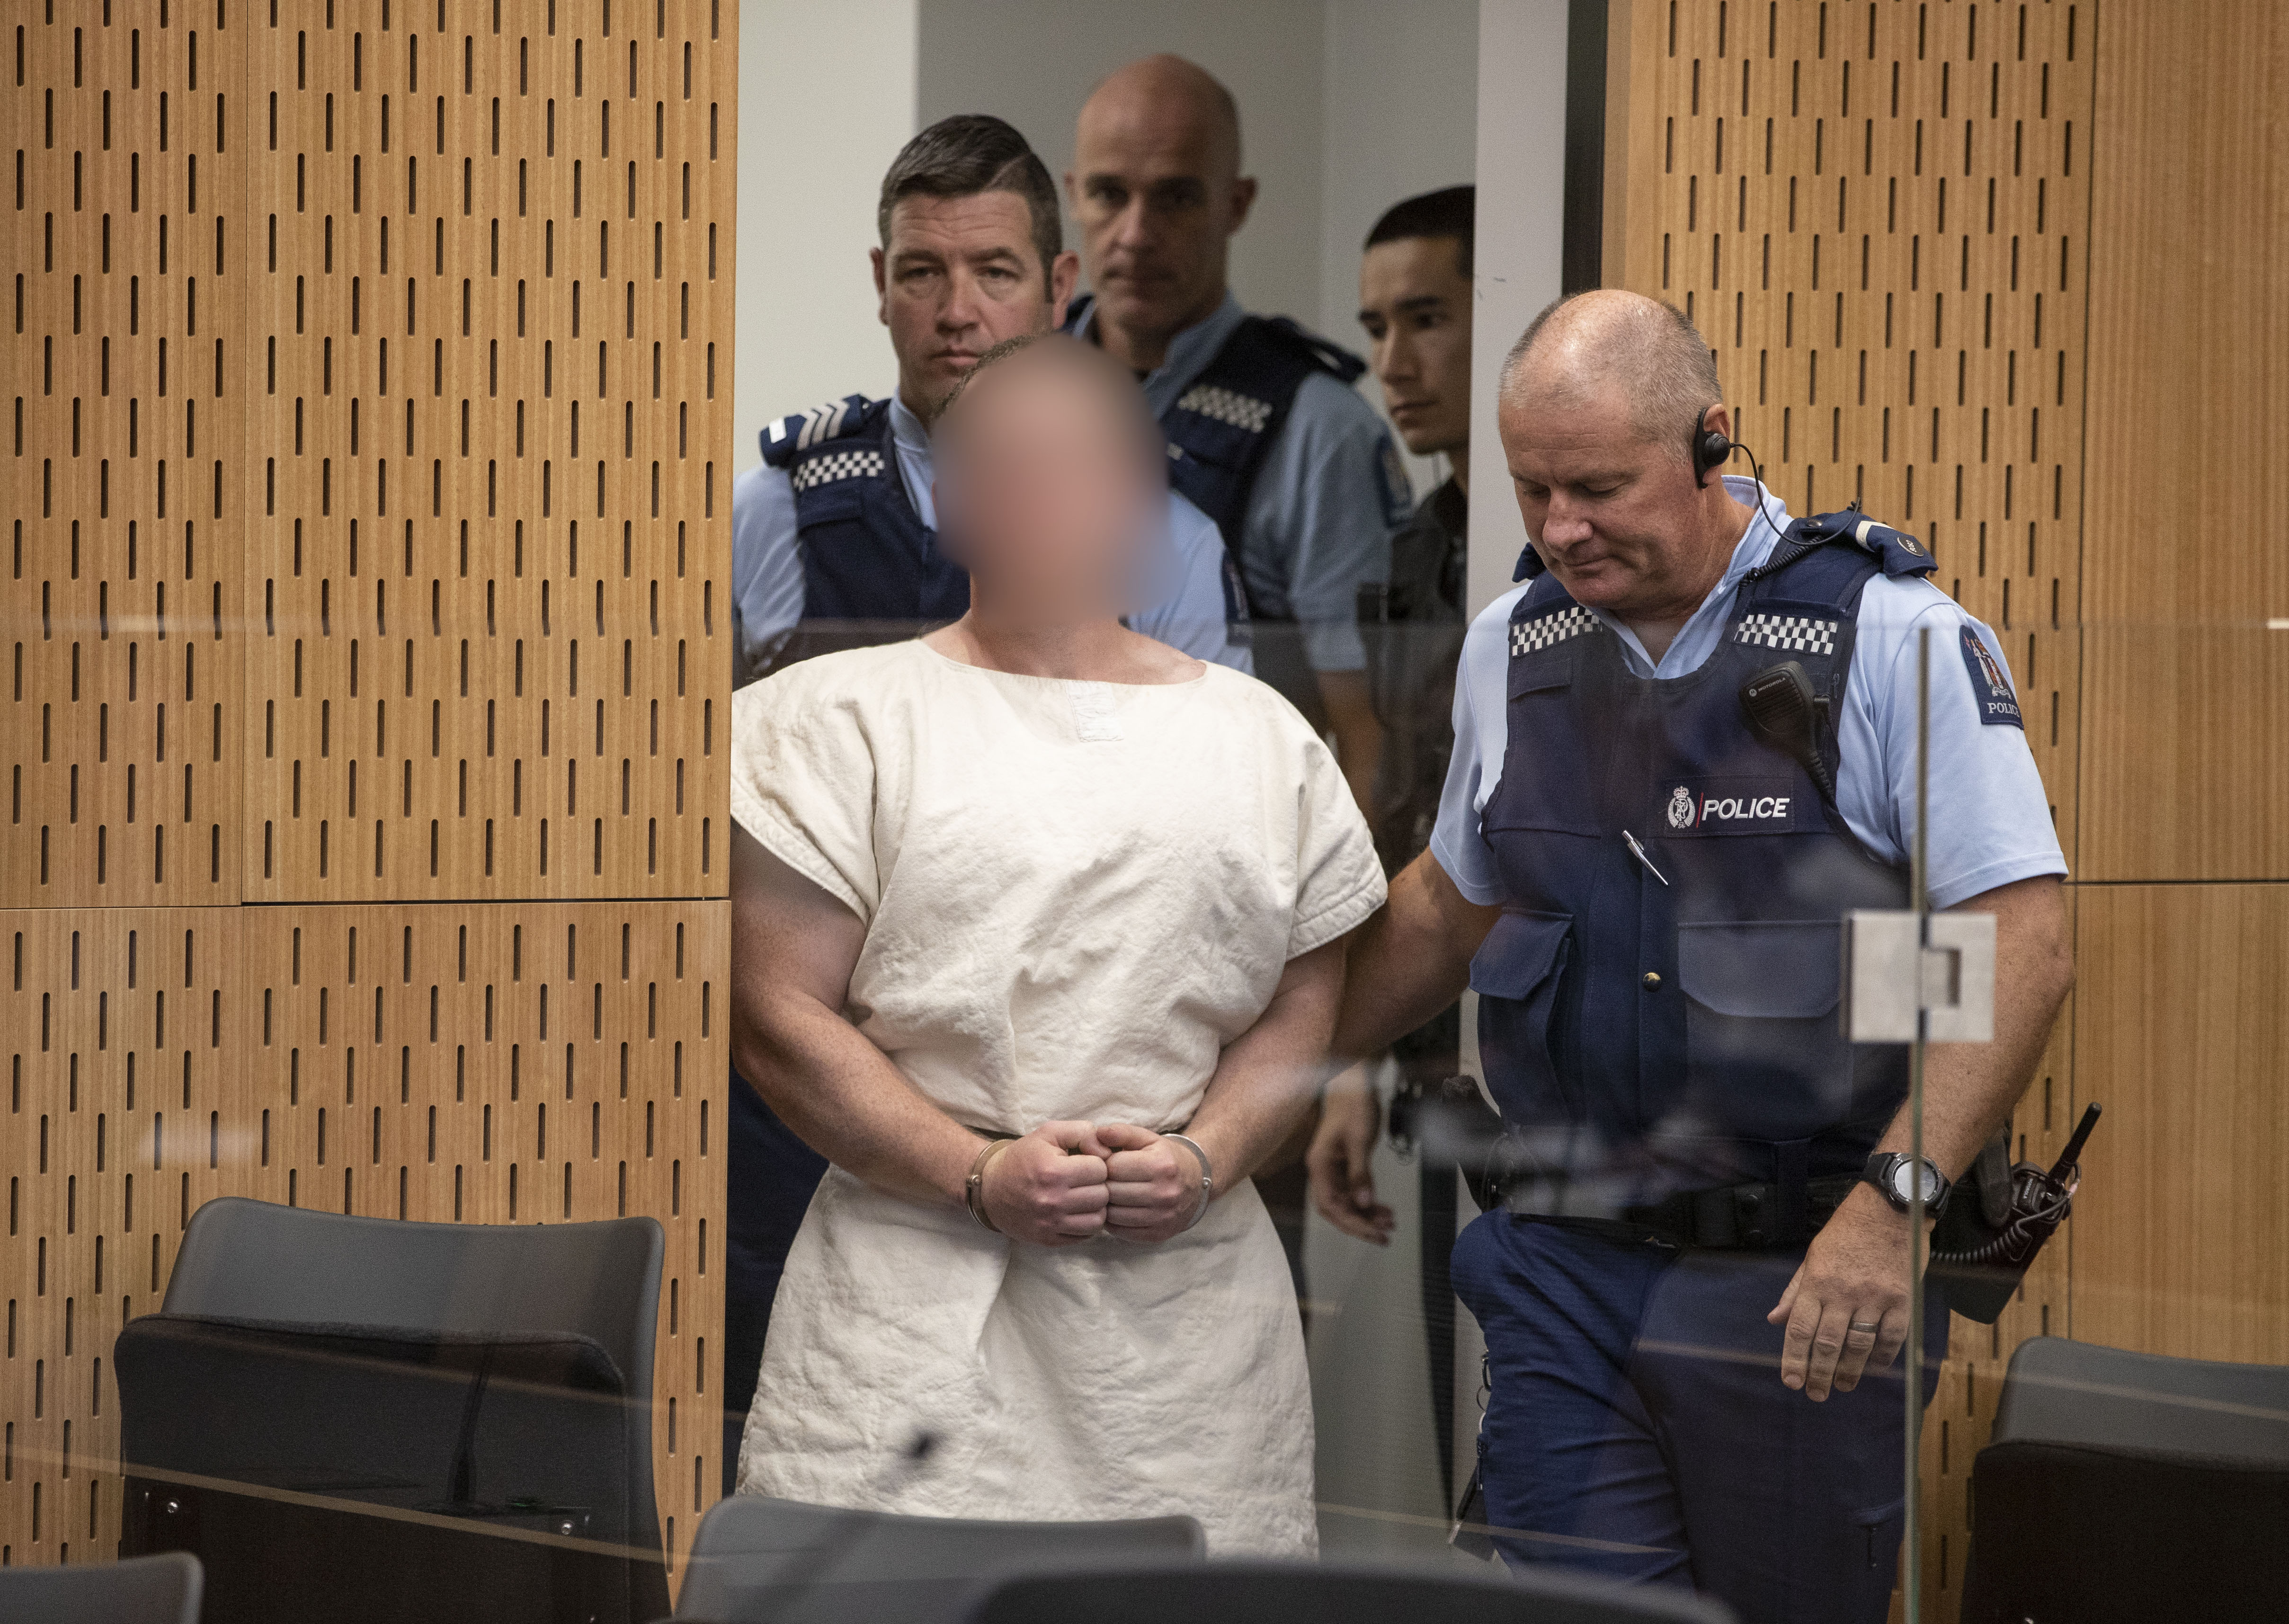 Brenton Tarrant being led into the courtroom by several police officers at the Christchurch District Court | Photo: Getty Images